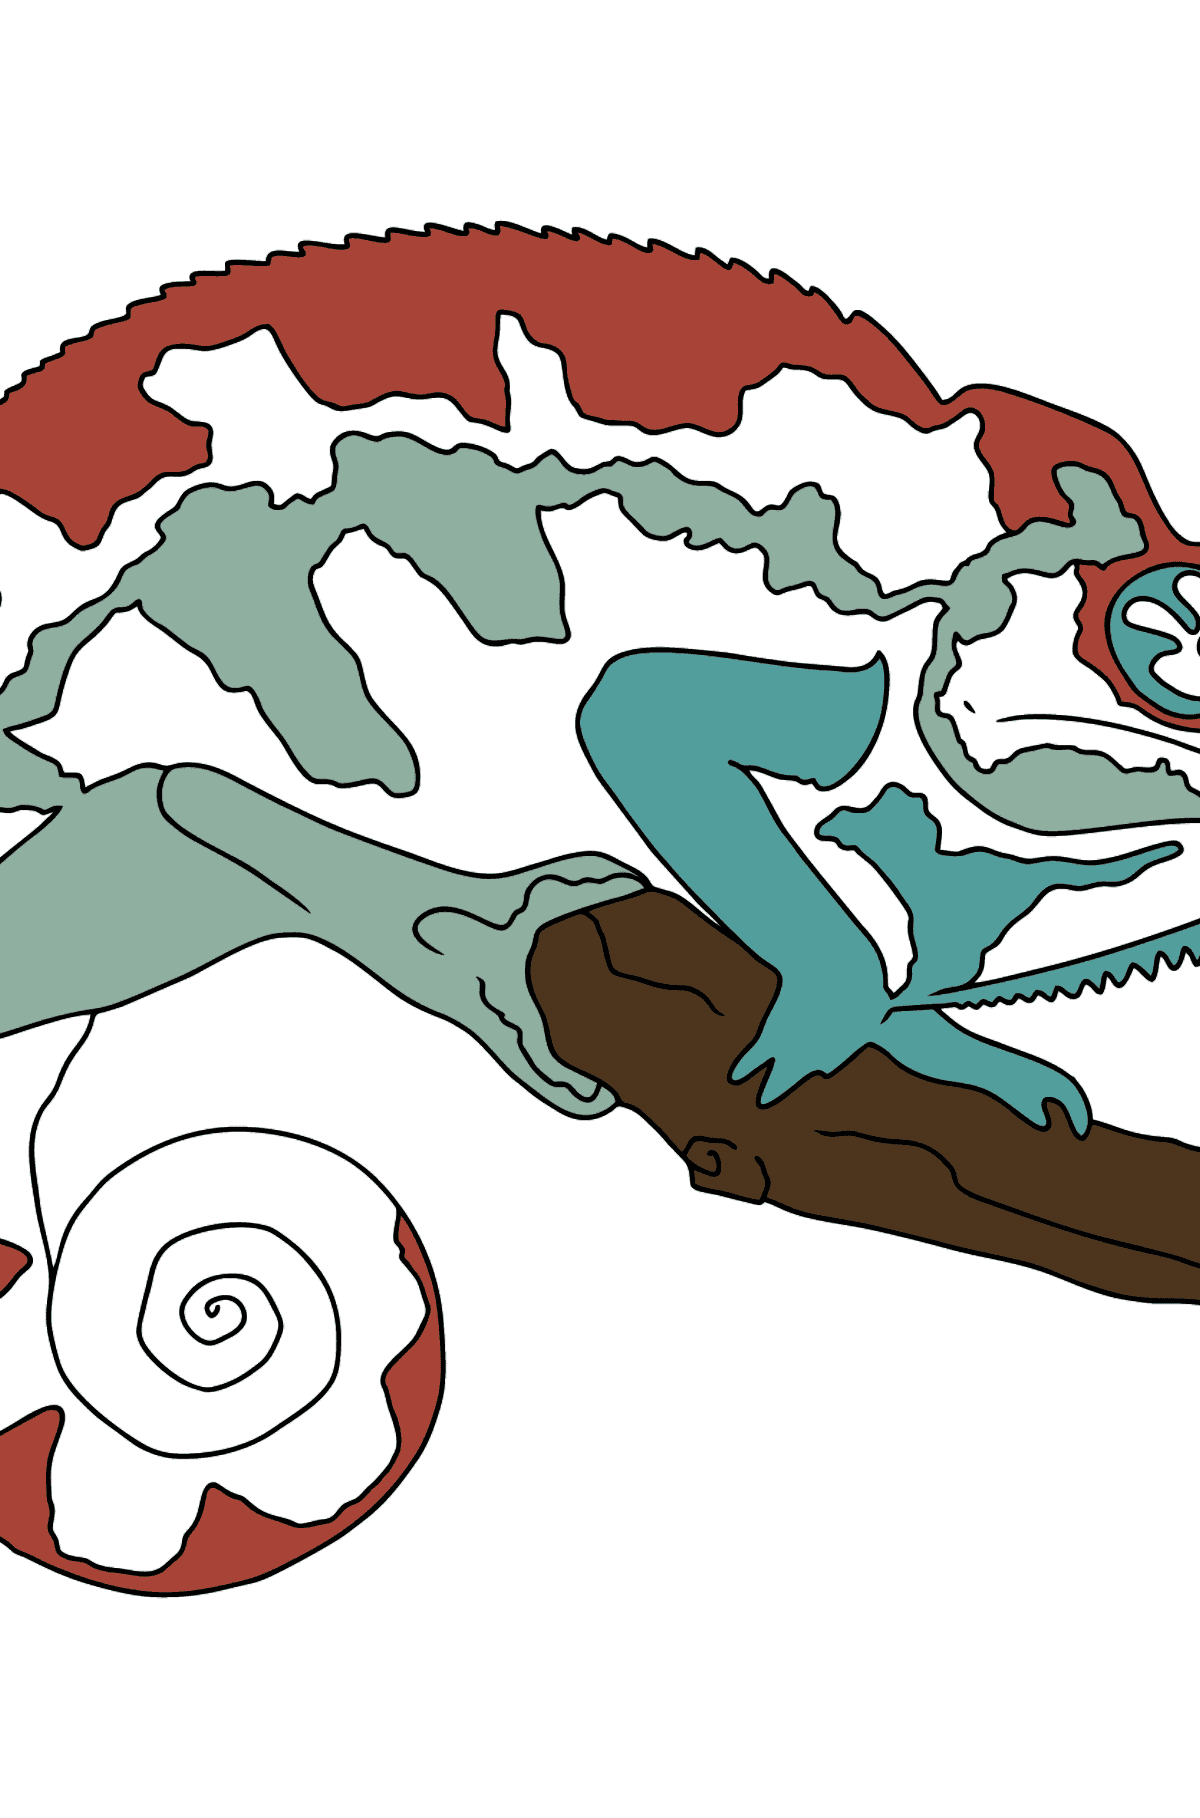 Coloring Page - A Chameleon is Having a Rest - Coloring Pages for Kids